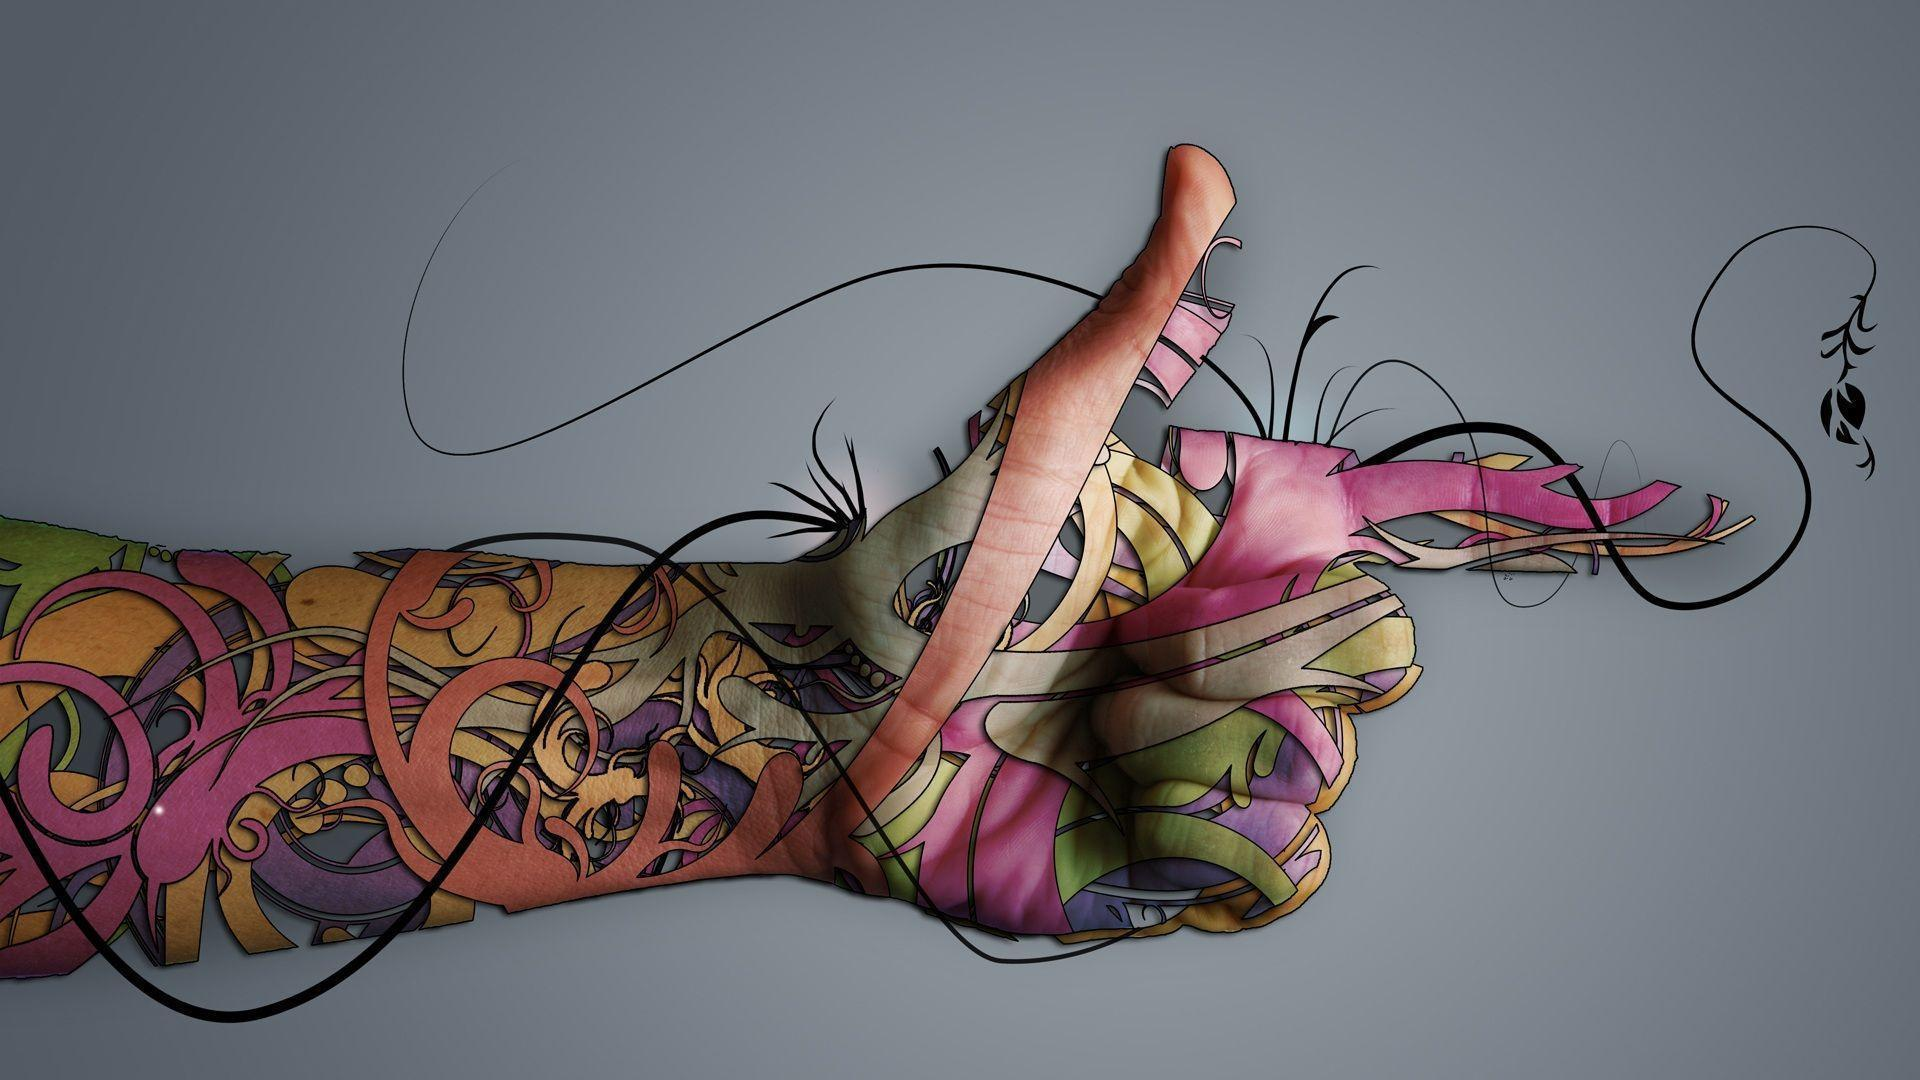 Hd wallpaper tattoo - Cool Tattoo Backgrounds 1920 1080 High Definition Wallpaper